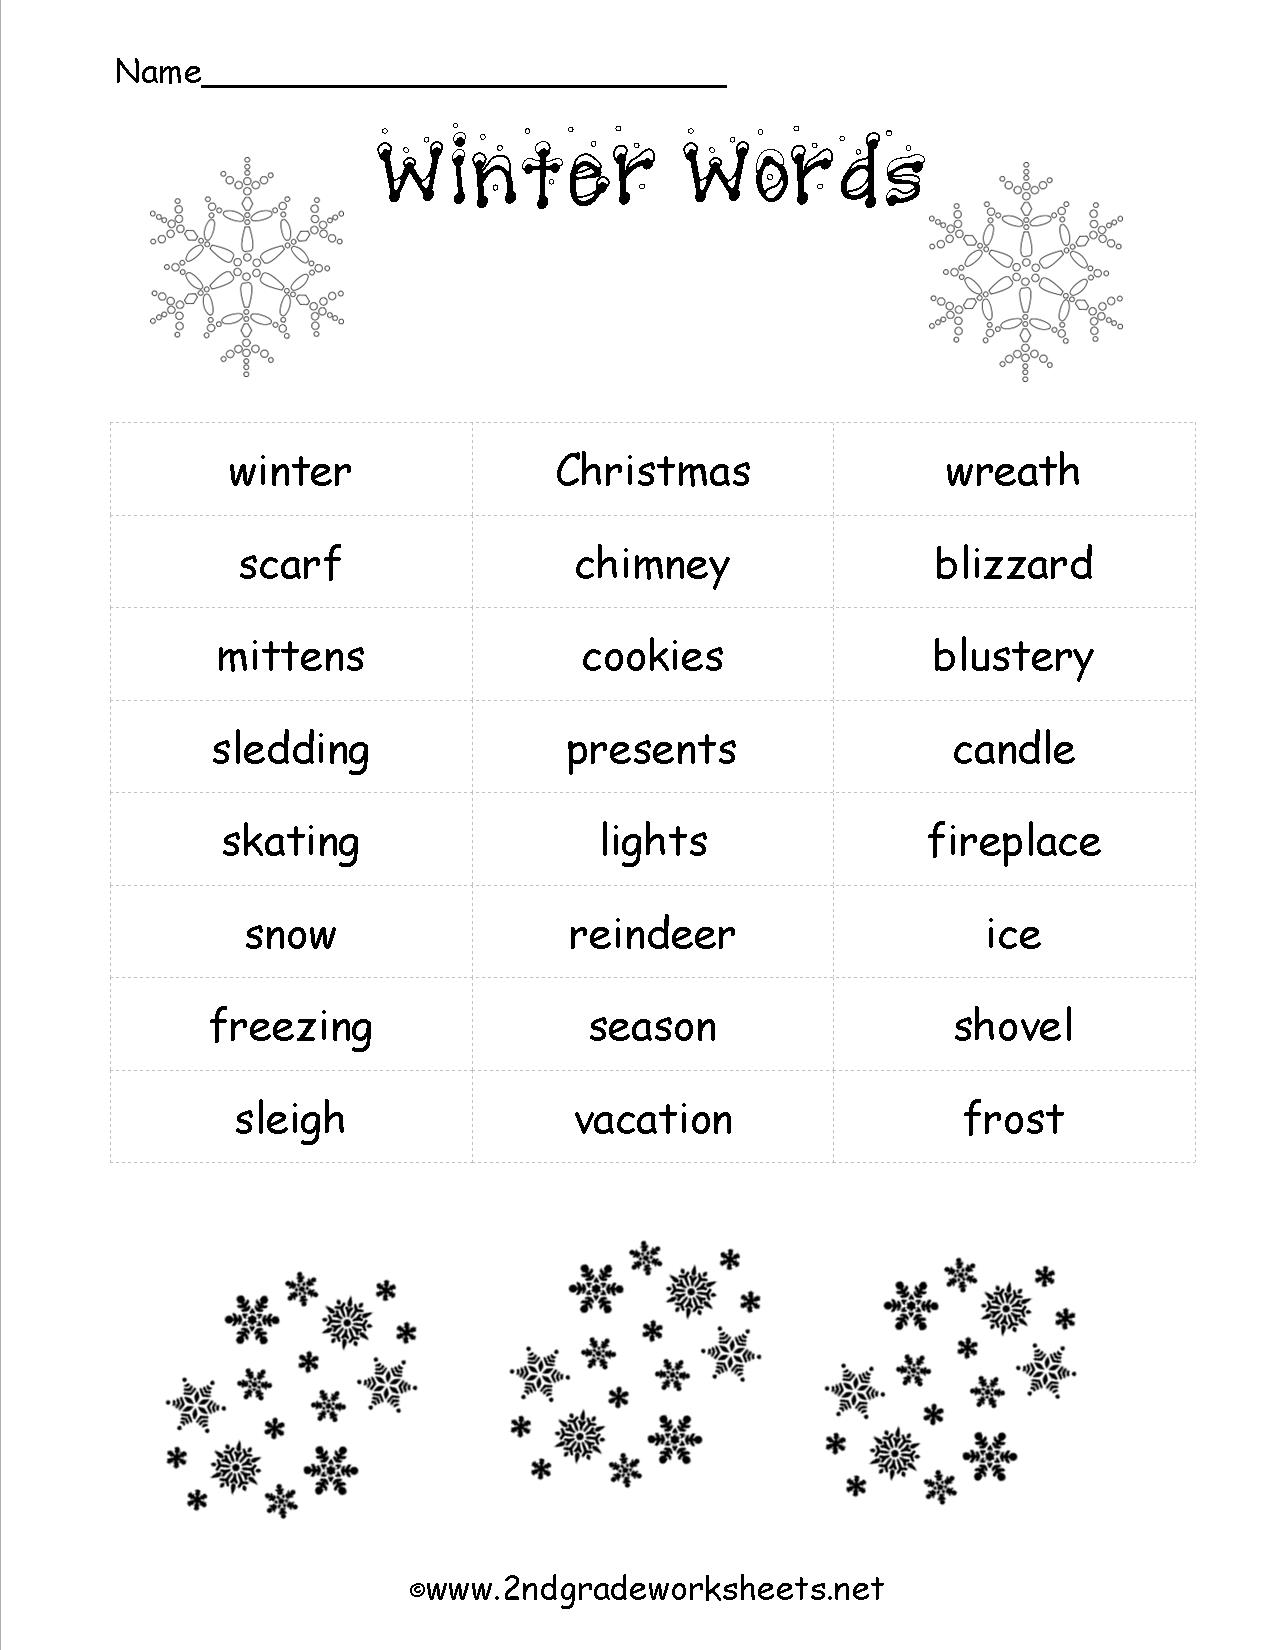 math worksheet : winter lesson plans themes printouts crafts : Winter Worksheets Kindergarten